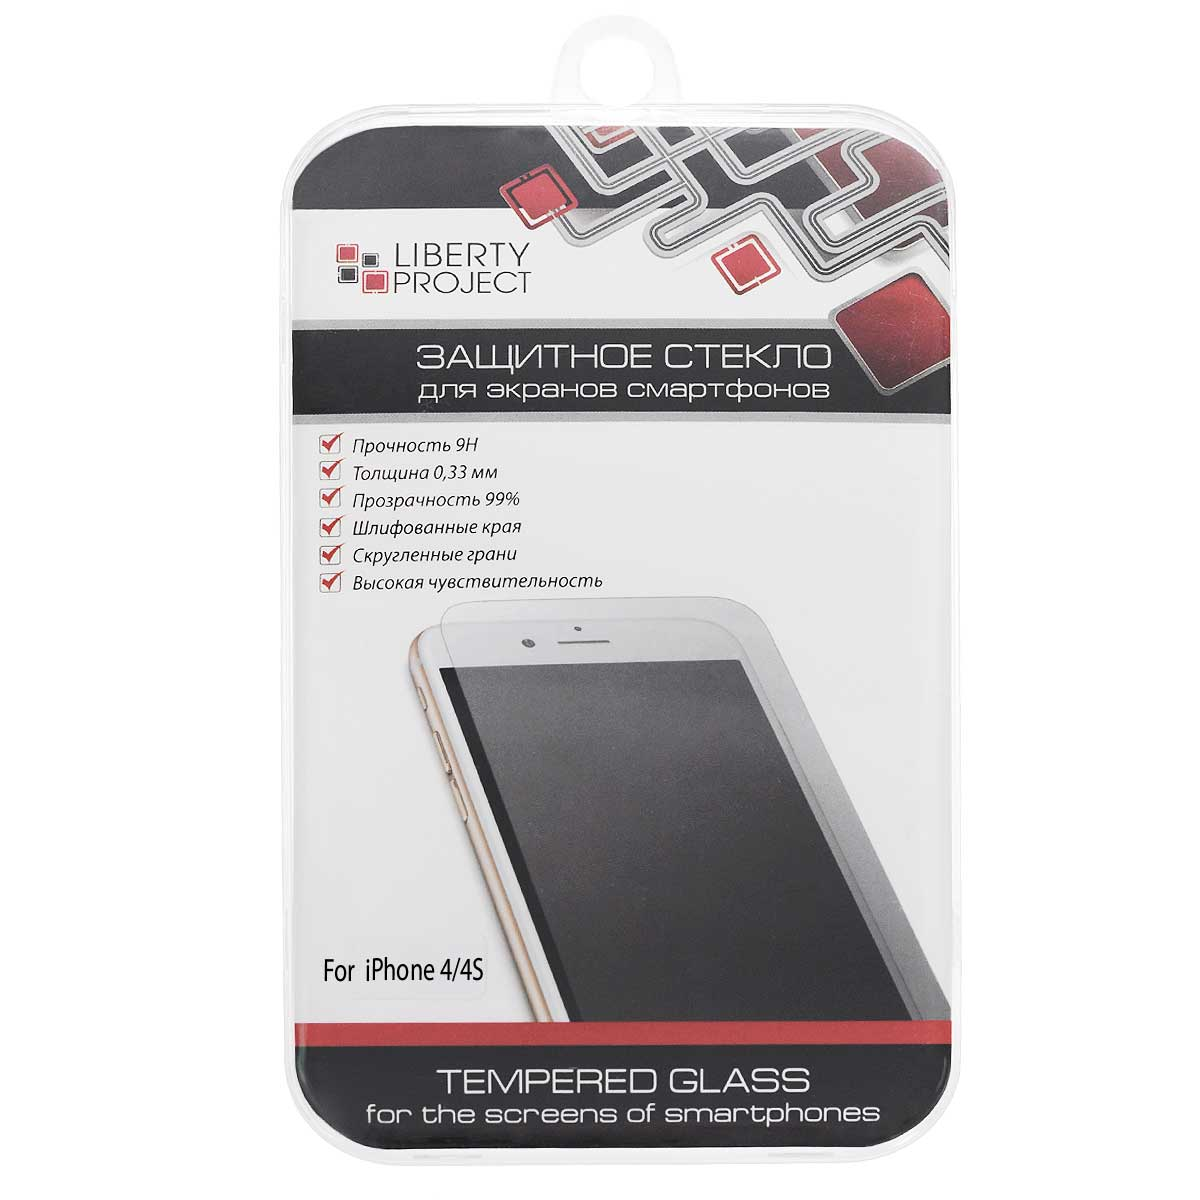 Liberty Project Tempered Glass защитное стекло для iPhone 4/4S, Clear (0,33 мм) liberty project tempered glass защитное стекло для htc one m8 clear 0 33 мм